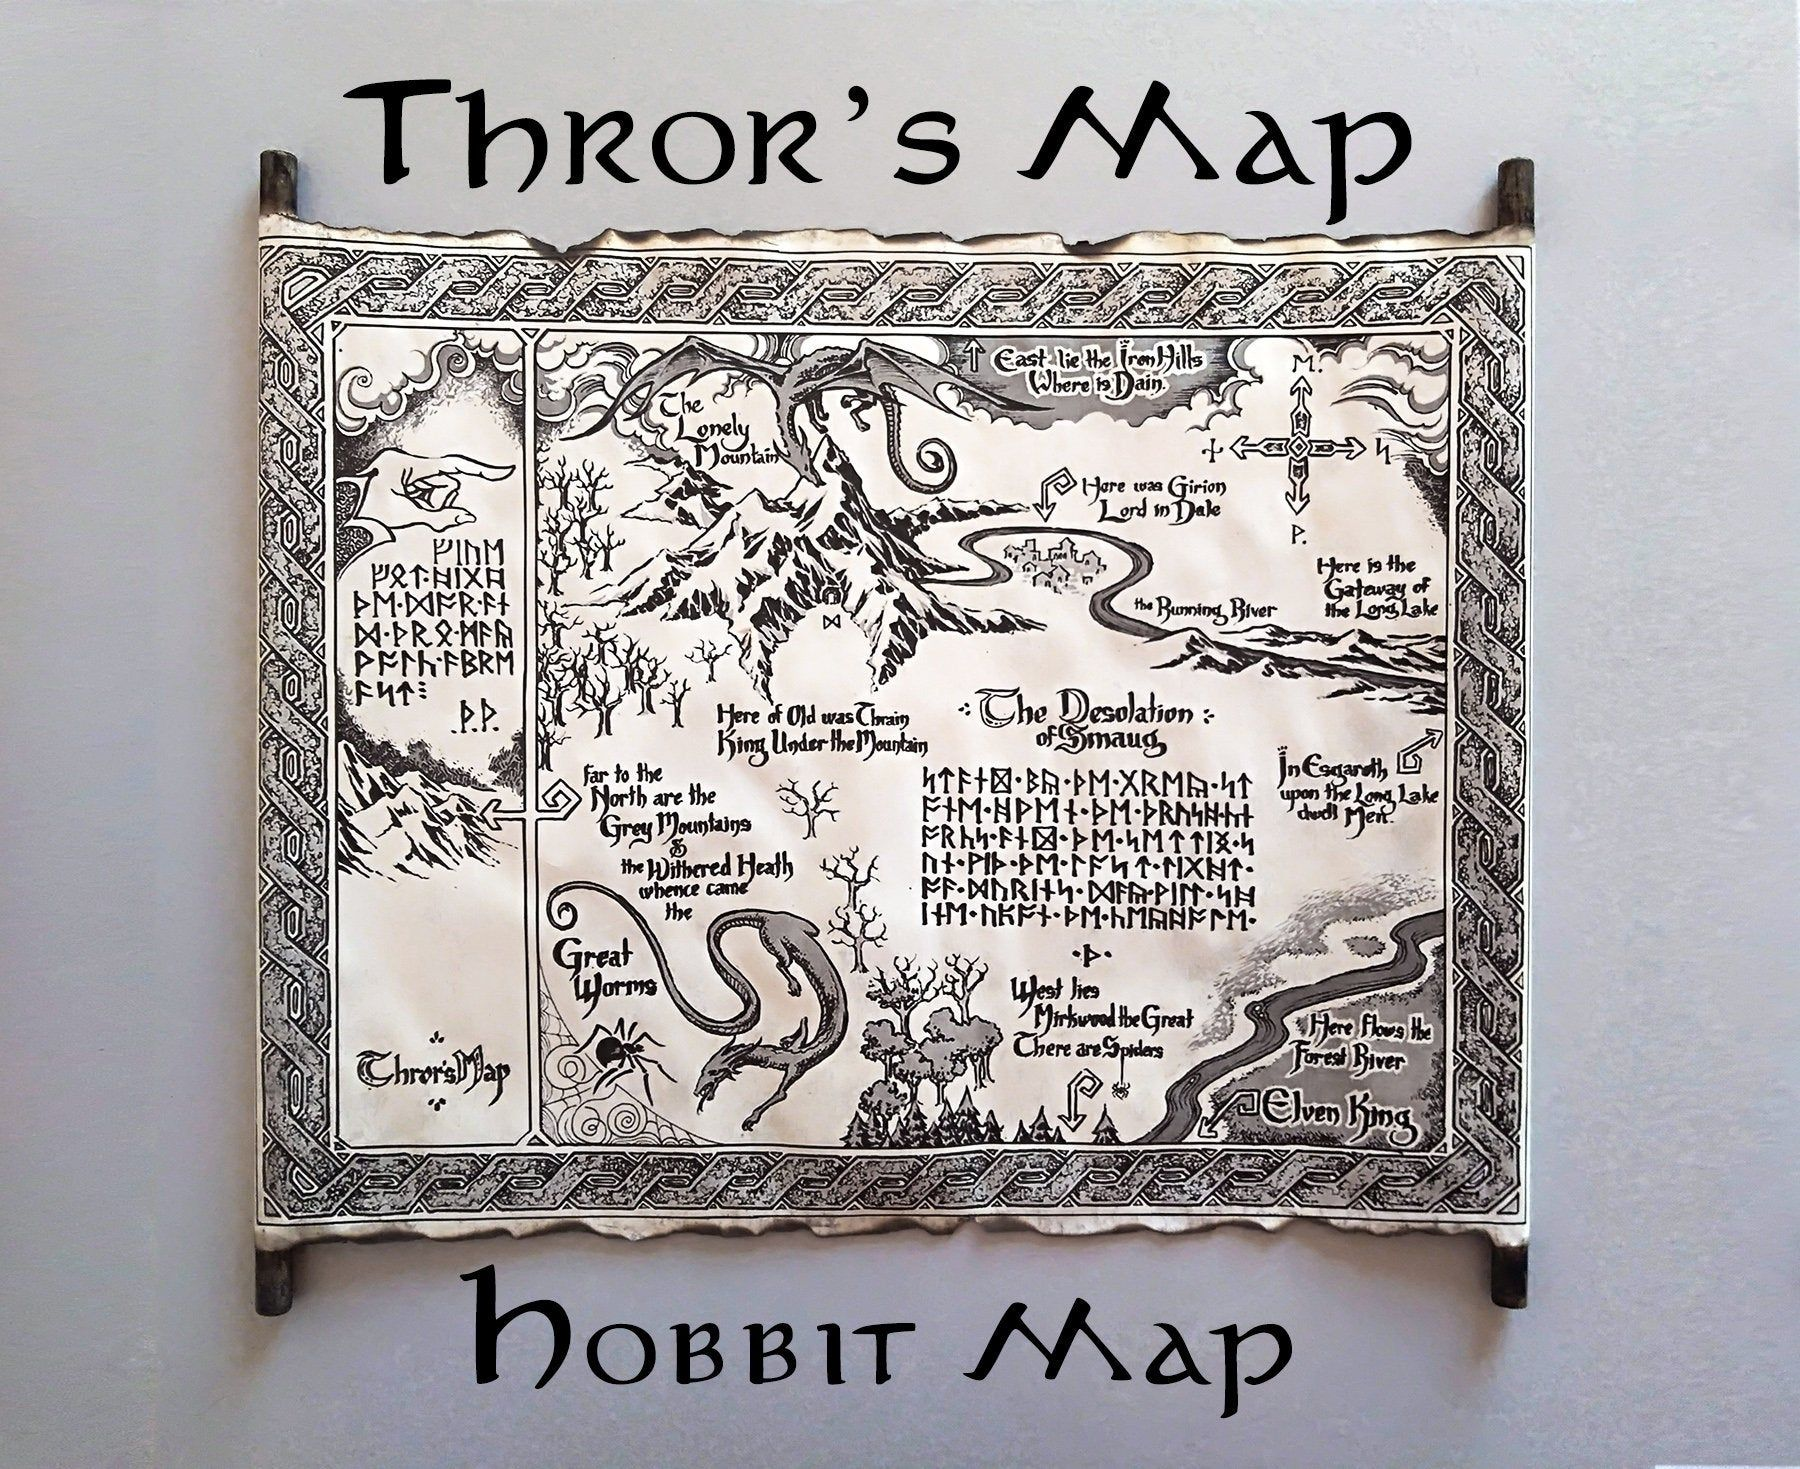 Thror S Map The Hobbit Map Thrain Elrond Map Thorin S Map